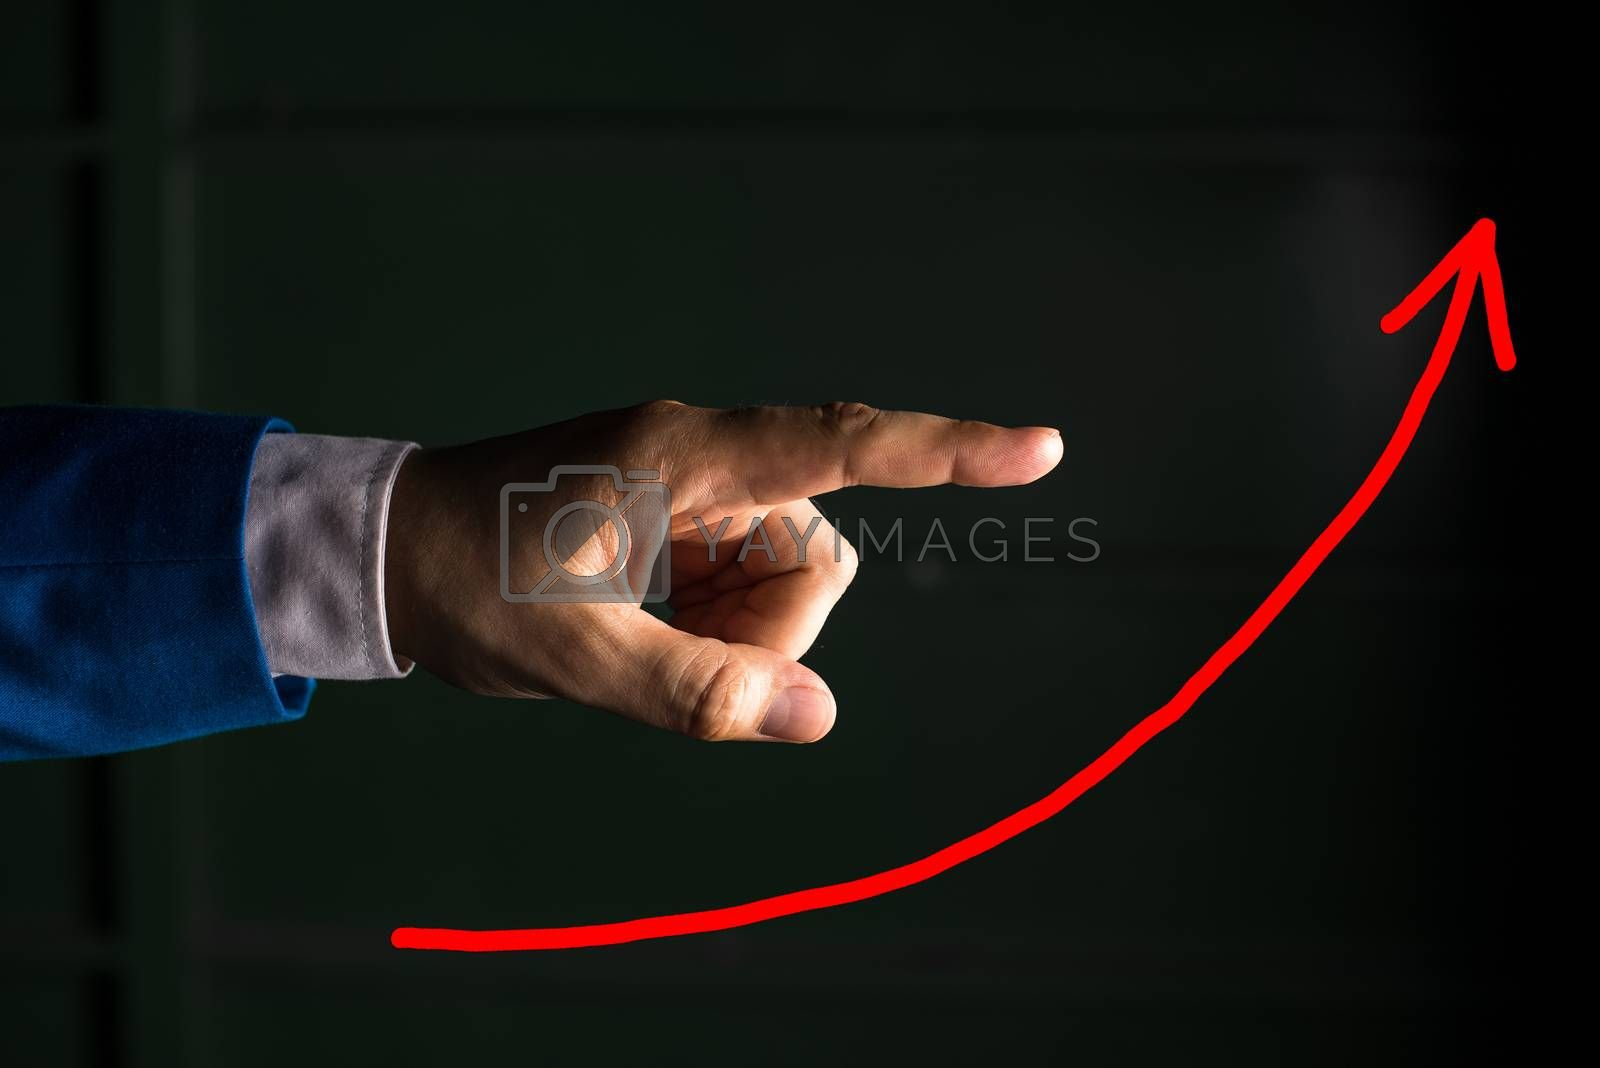 Digital Arrowhead Curve Rising Upward Denoting Growth Development Concept